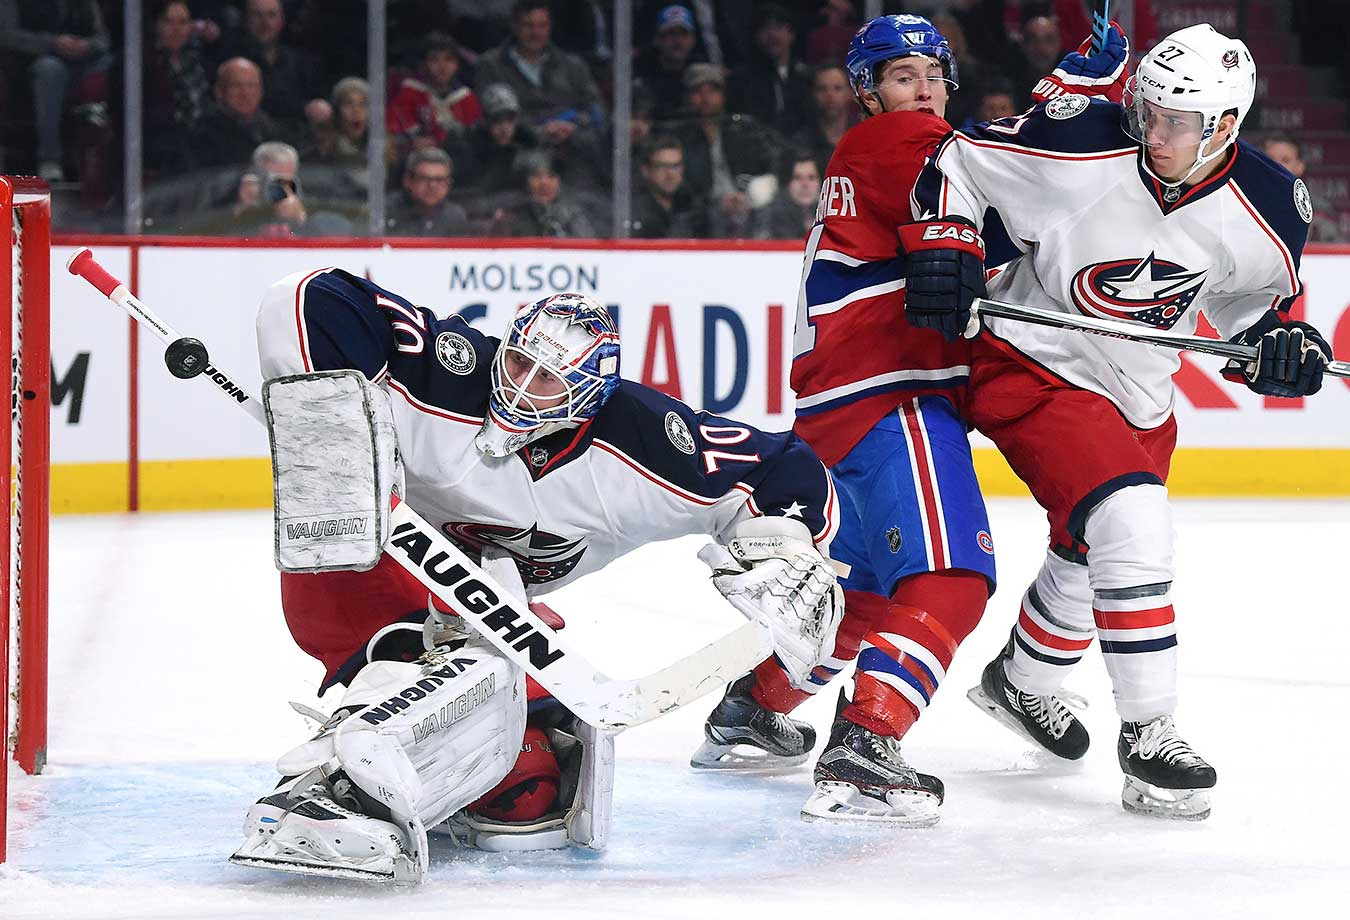 Joonas Korpisalo of the Columbus Blue Jackets blocks a shotat the Bell Centre in Montreal. (